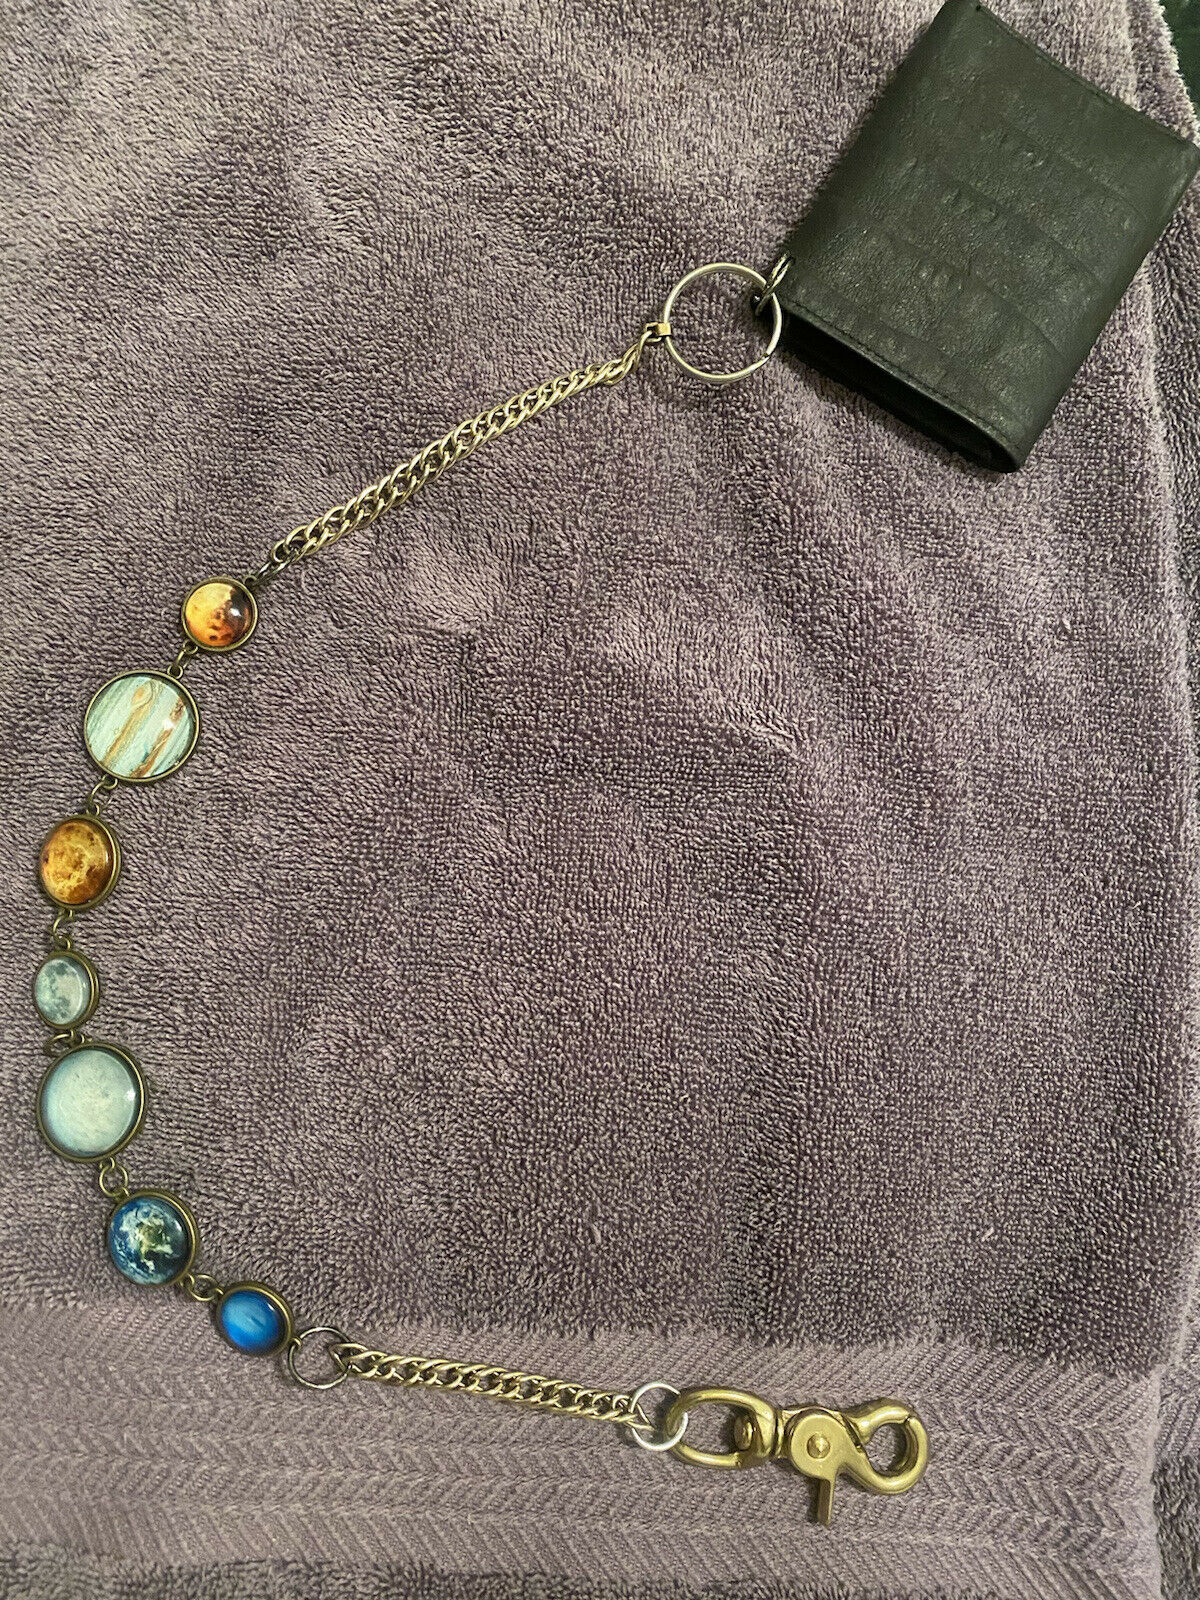 Sevel ChainSmith Solar System Chain with leather Wallet(one of a kind)